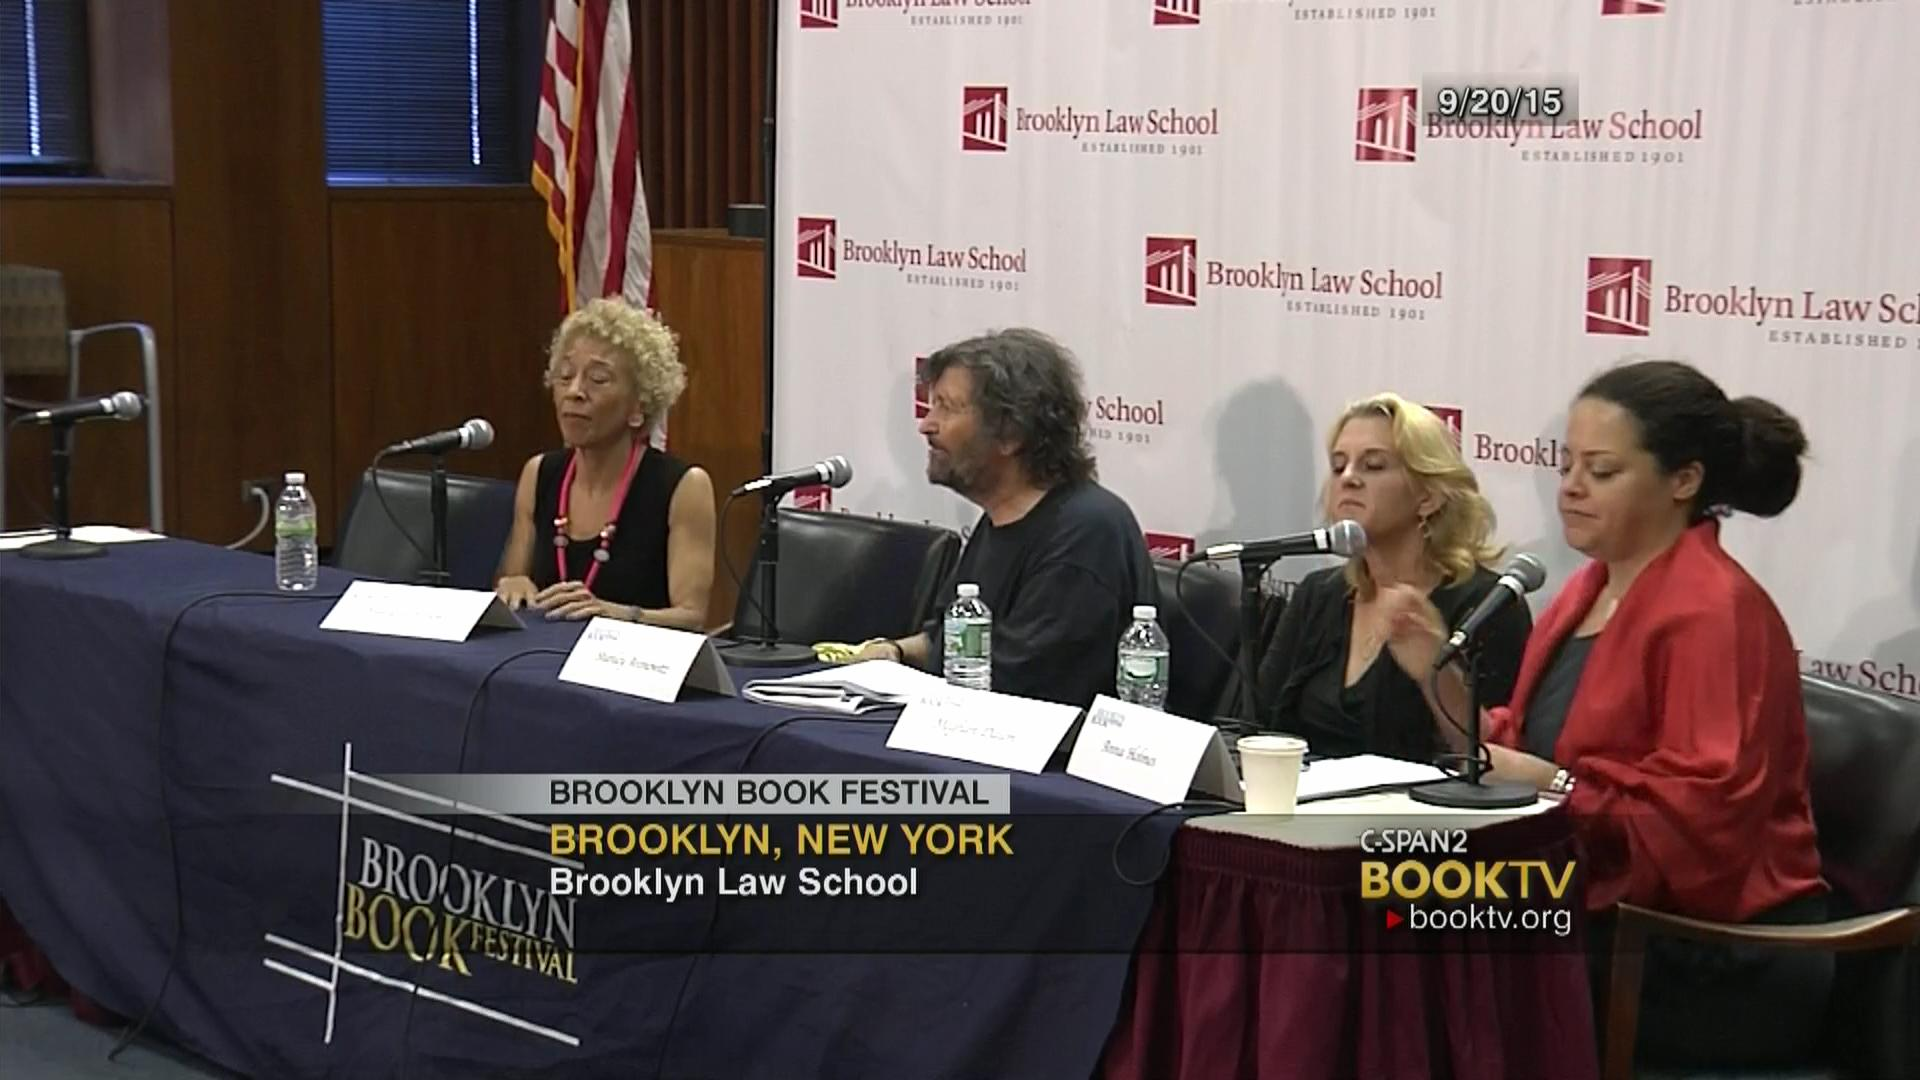 Panel Discussion on the Middle Class